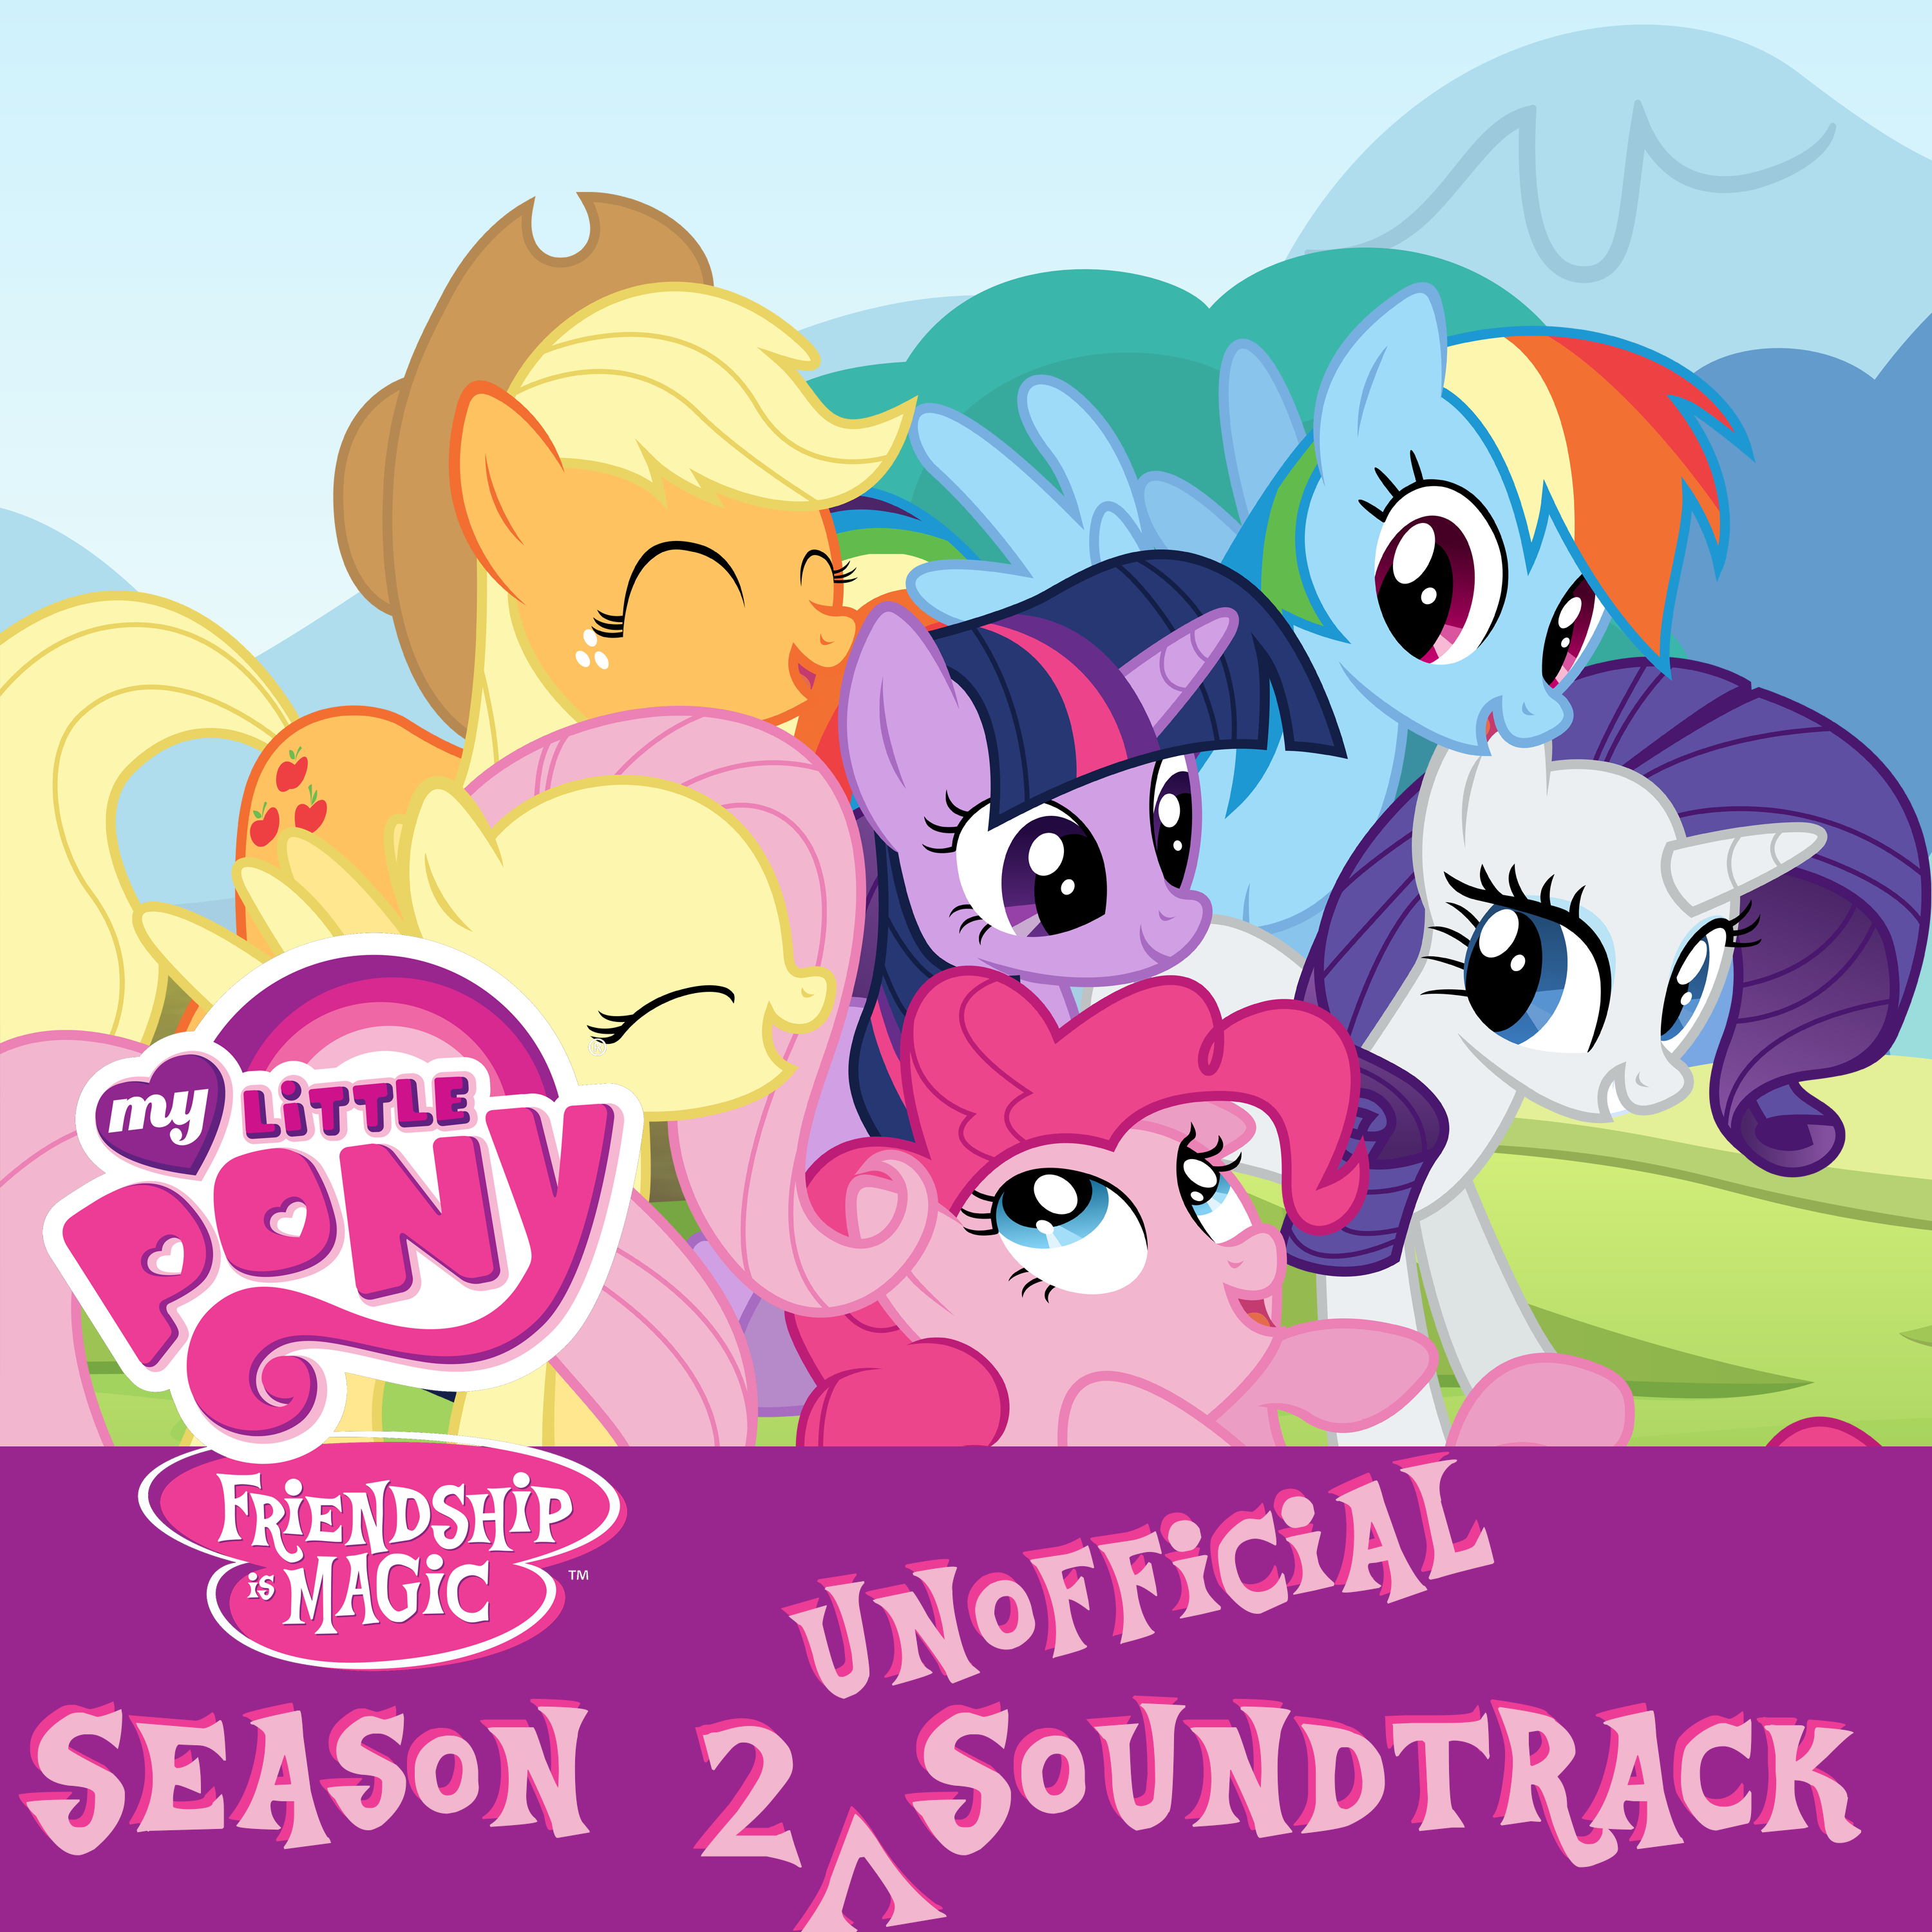 MLP Season 2 Unofficial Soundtrack Version 2.0 by DrZurnPhD